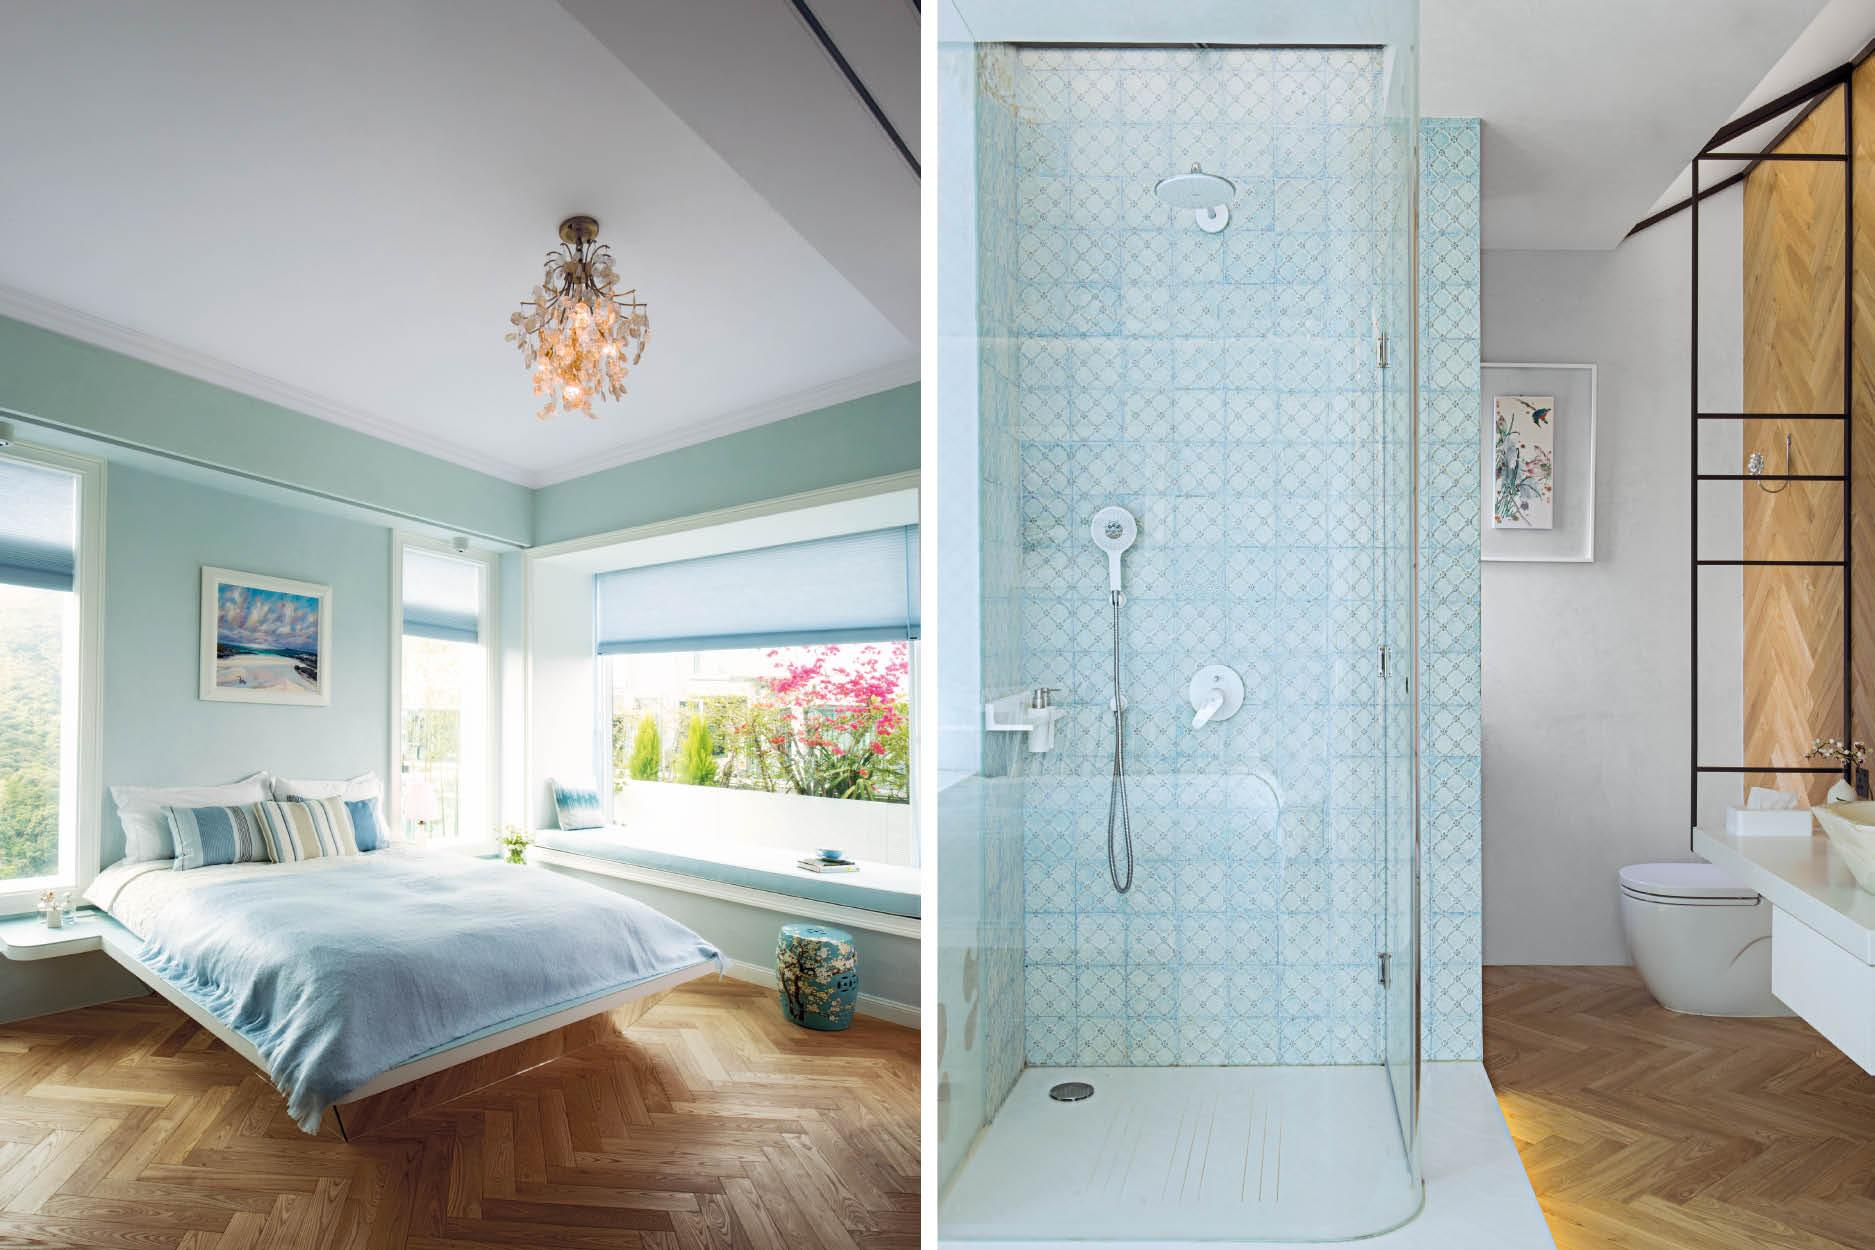 From the bedrooms to the bathrooms, wood is complemented by a bright seafoam palette, along with fixtures of glass and marble for a soft, balming look